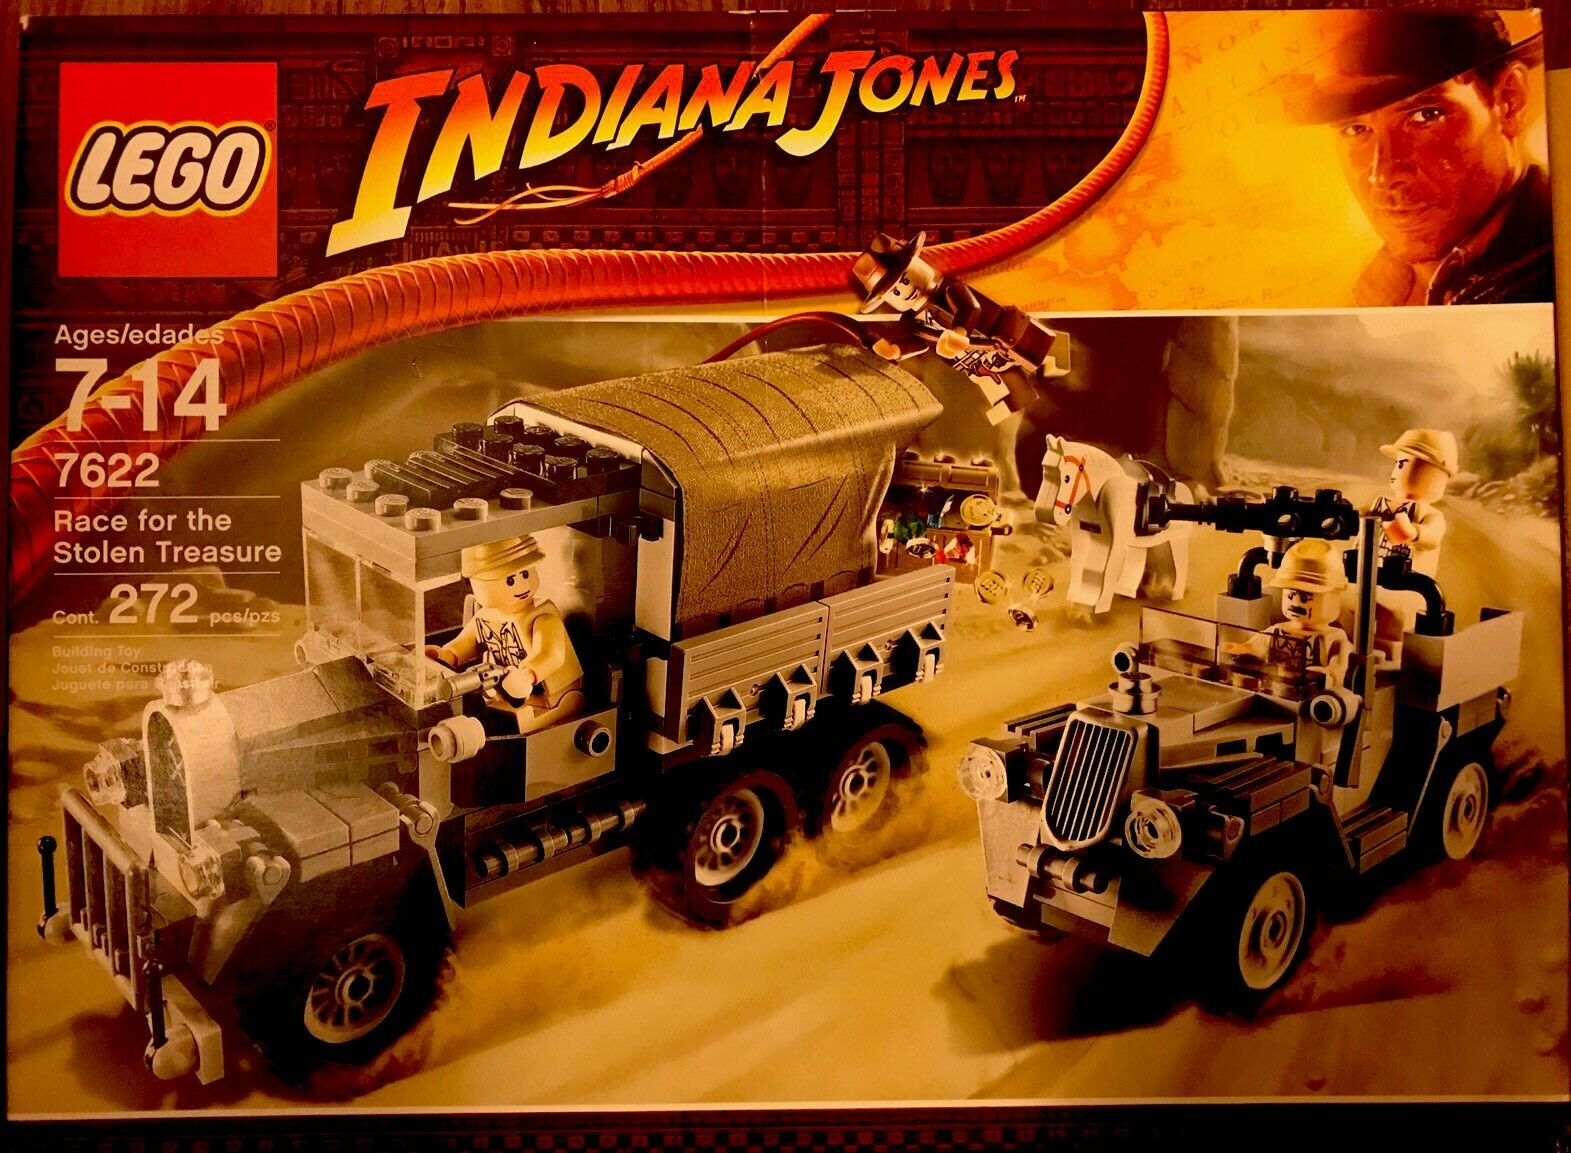 Indiana Jones™ LEGO Race for the Stolen Treasure (Desert Chase) 7622 RETIRED SET